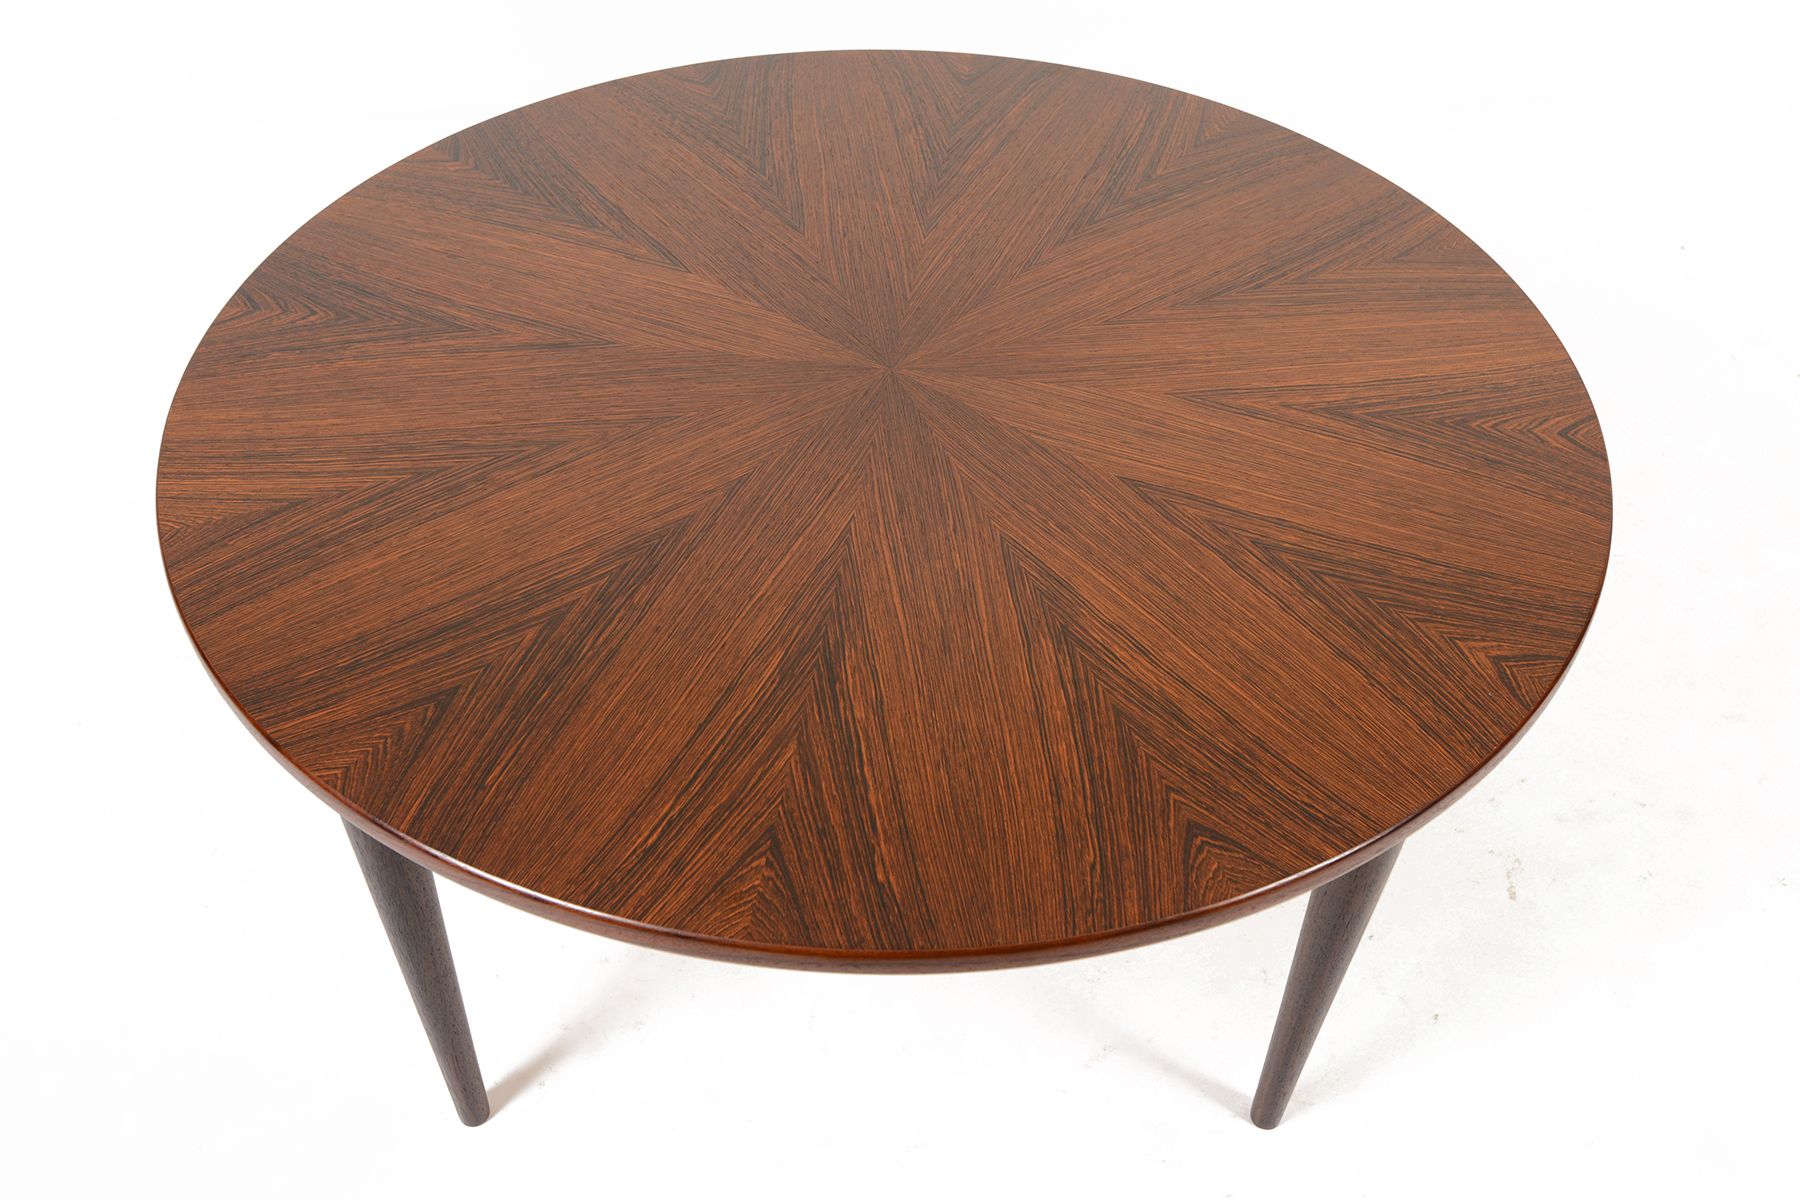 Danish Modern Round Starburst Rosewood Coffee Table